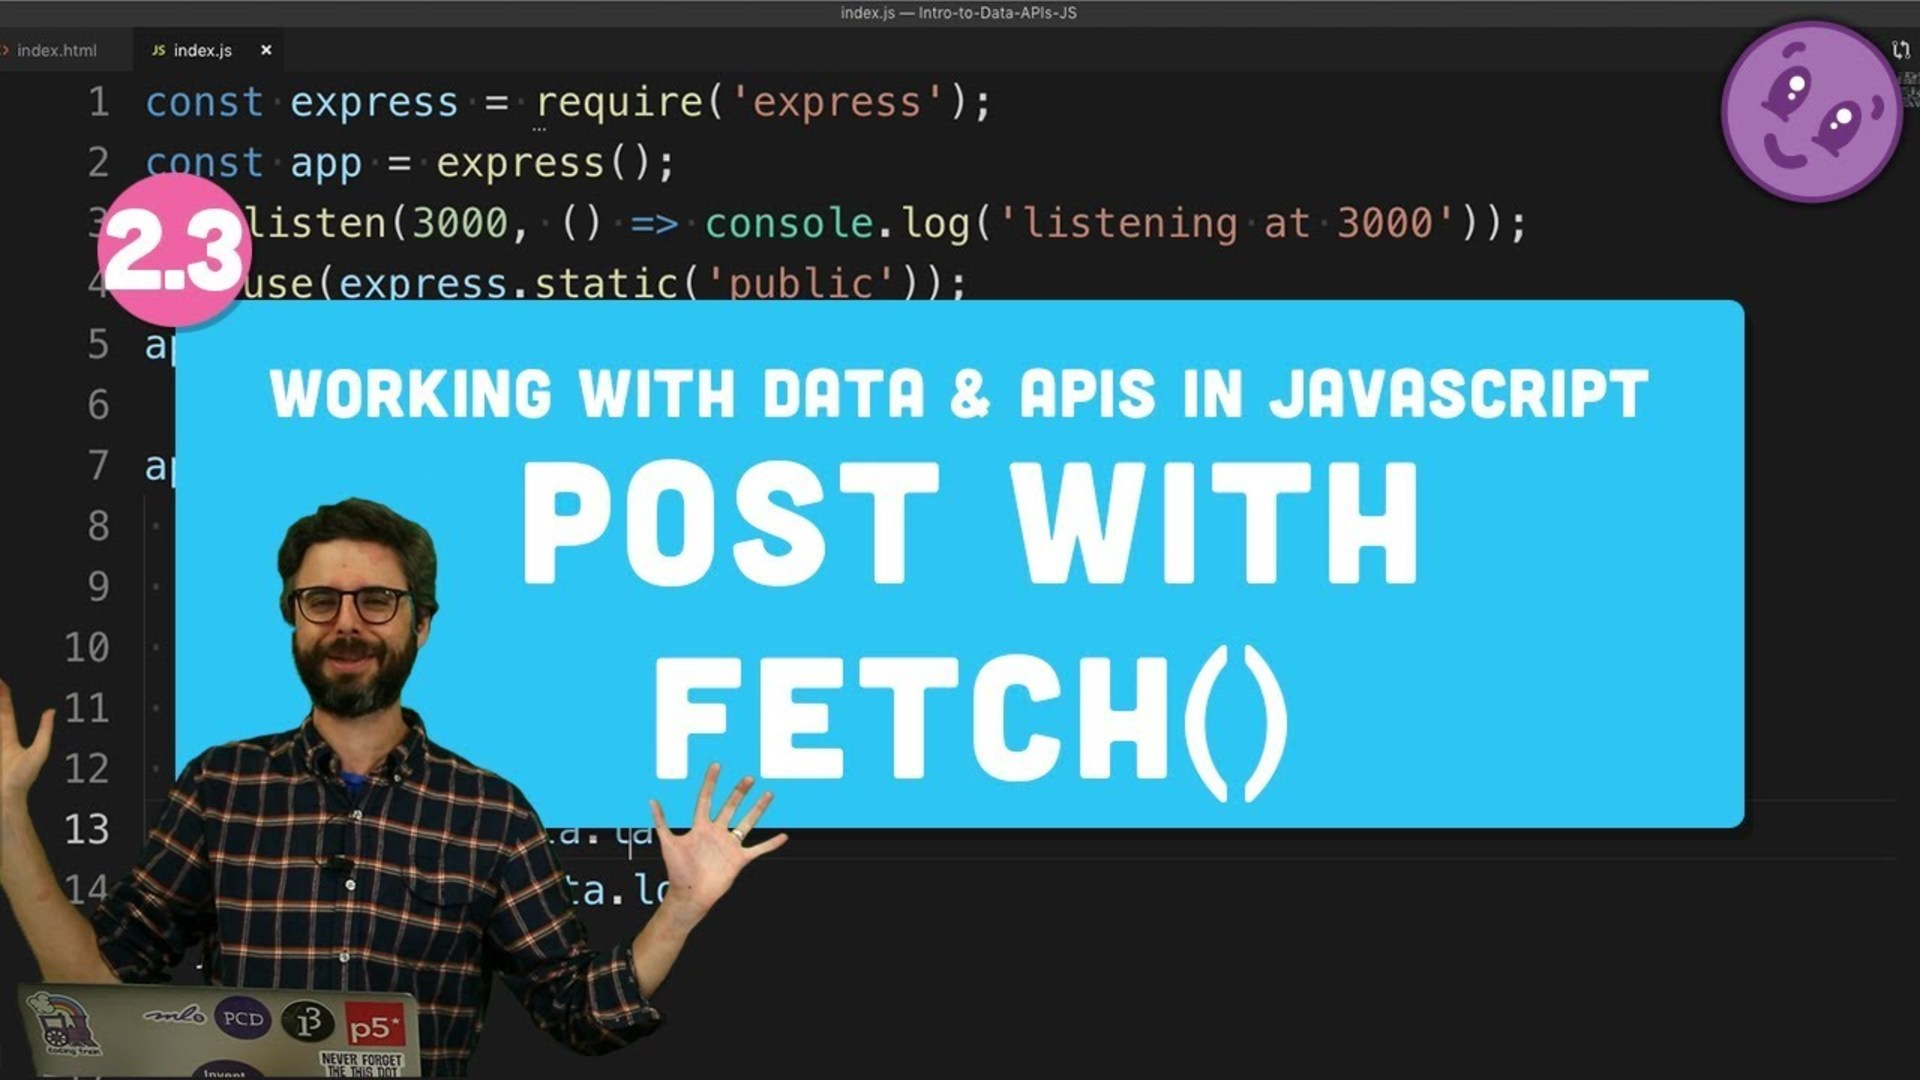 2 3 HTTP Post Request with fetch() - Working with Data and